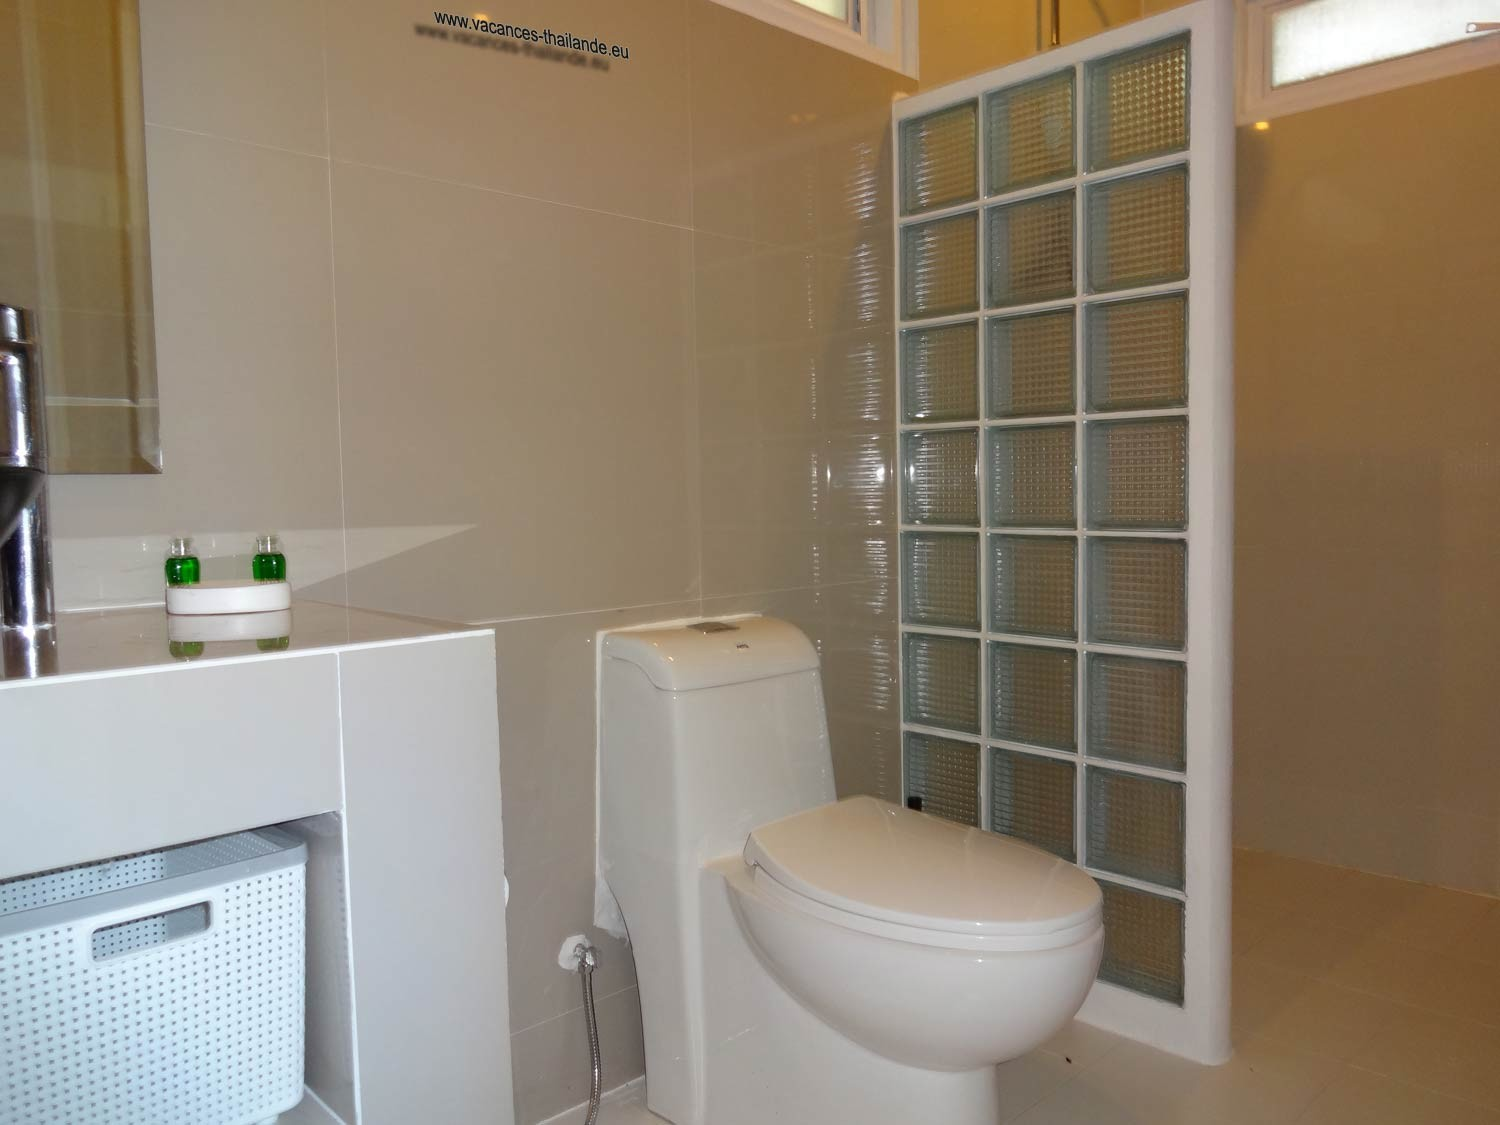 equipment-bathroom-1-white - villa-koh-samui-thailand-1500